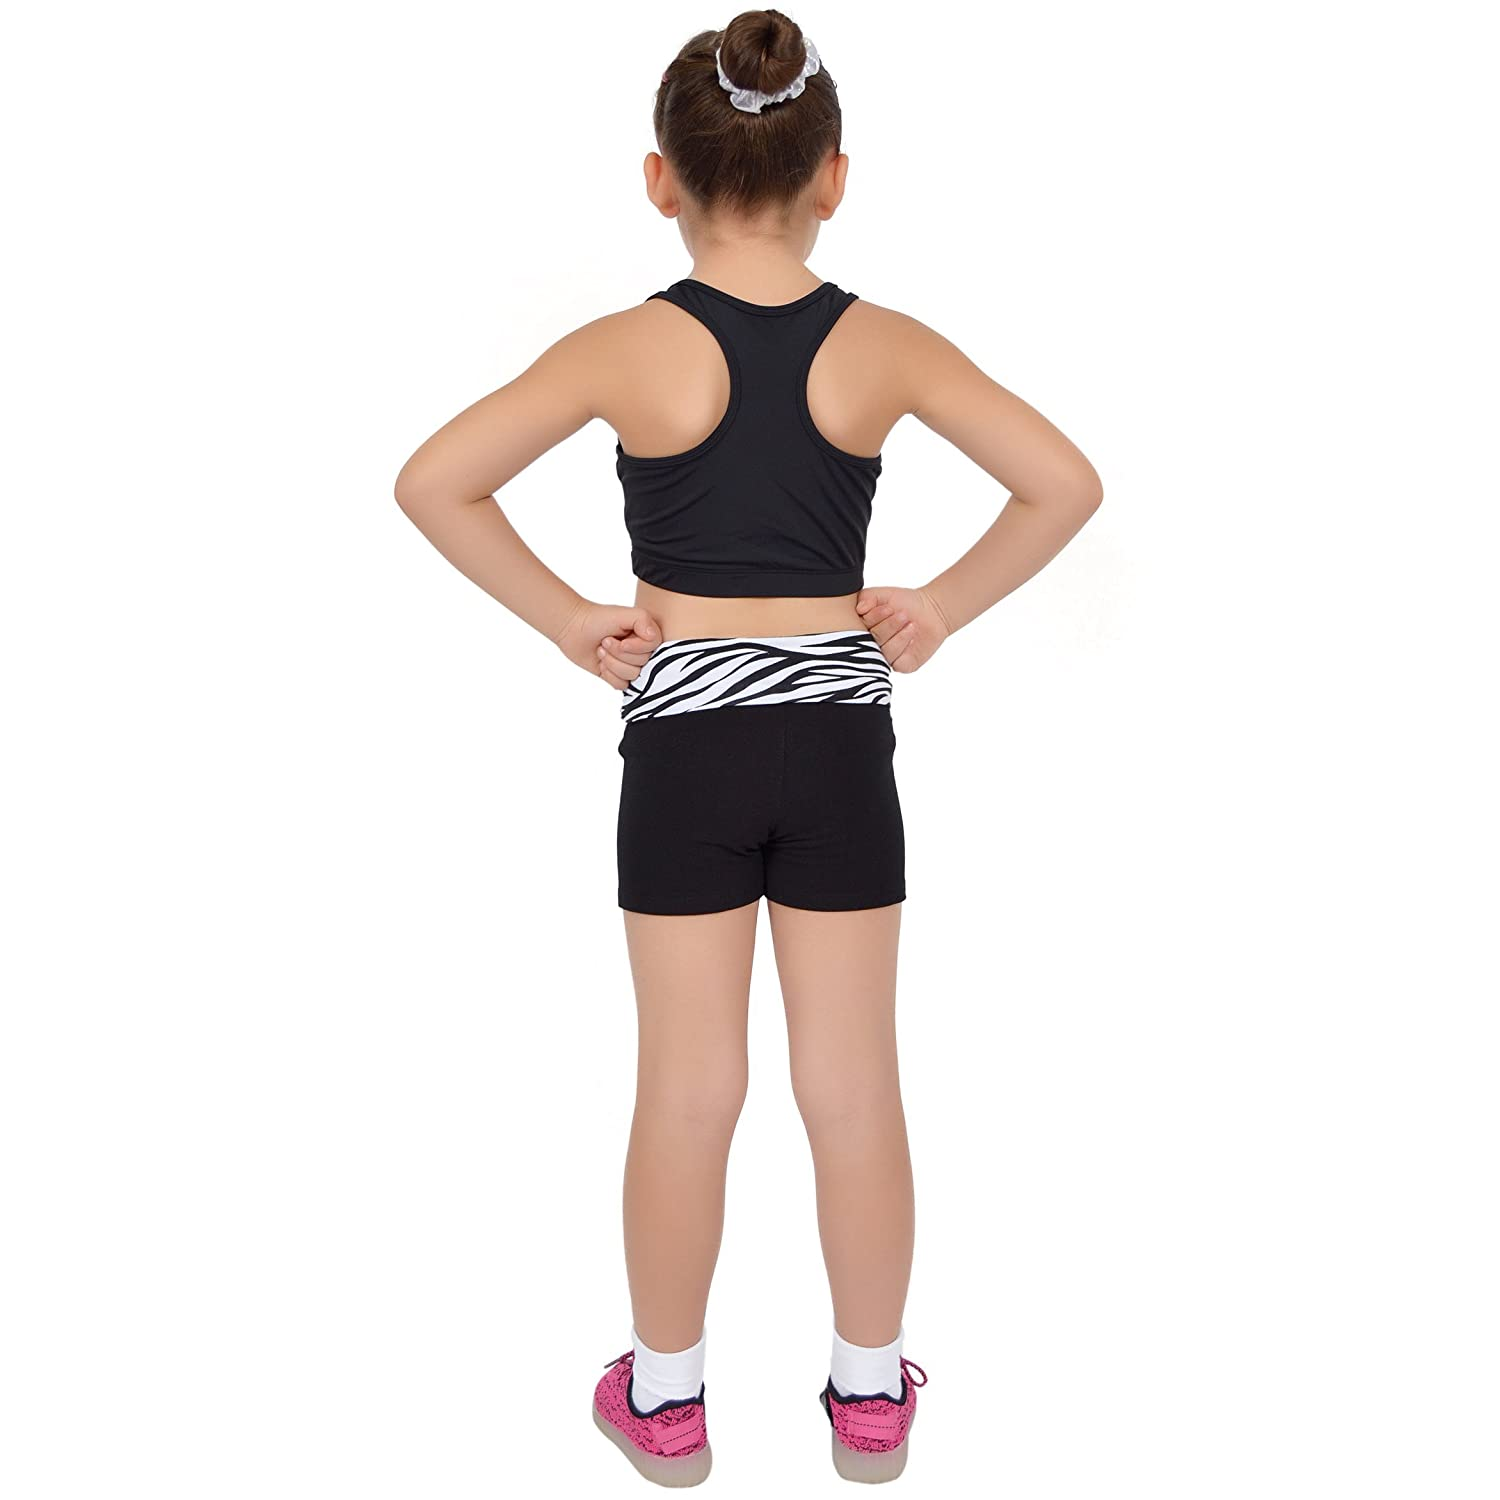 Stretch is Comfort Girls Foldover Yoga Shorts